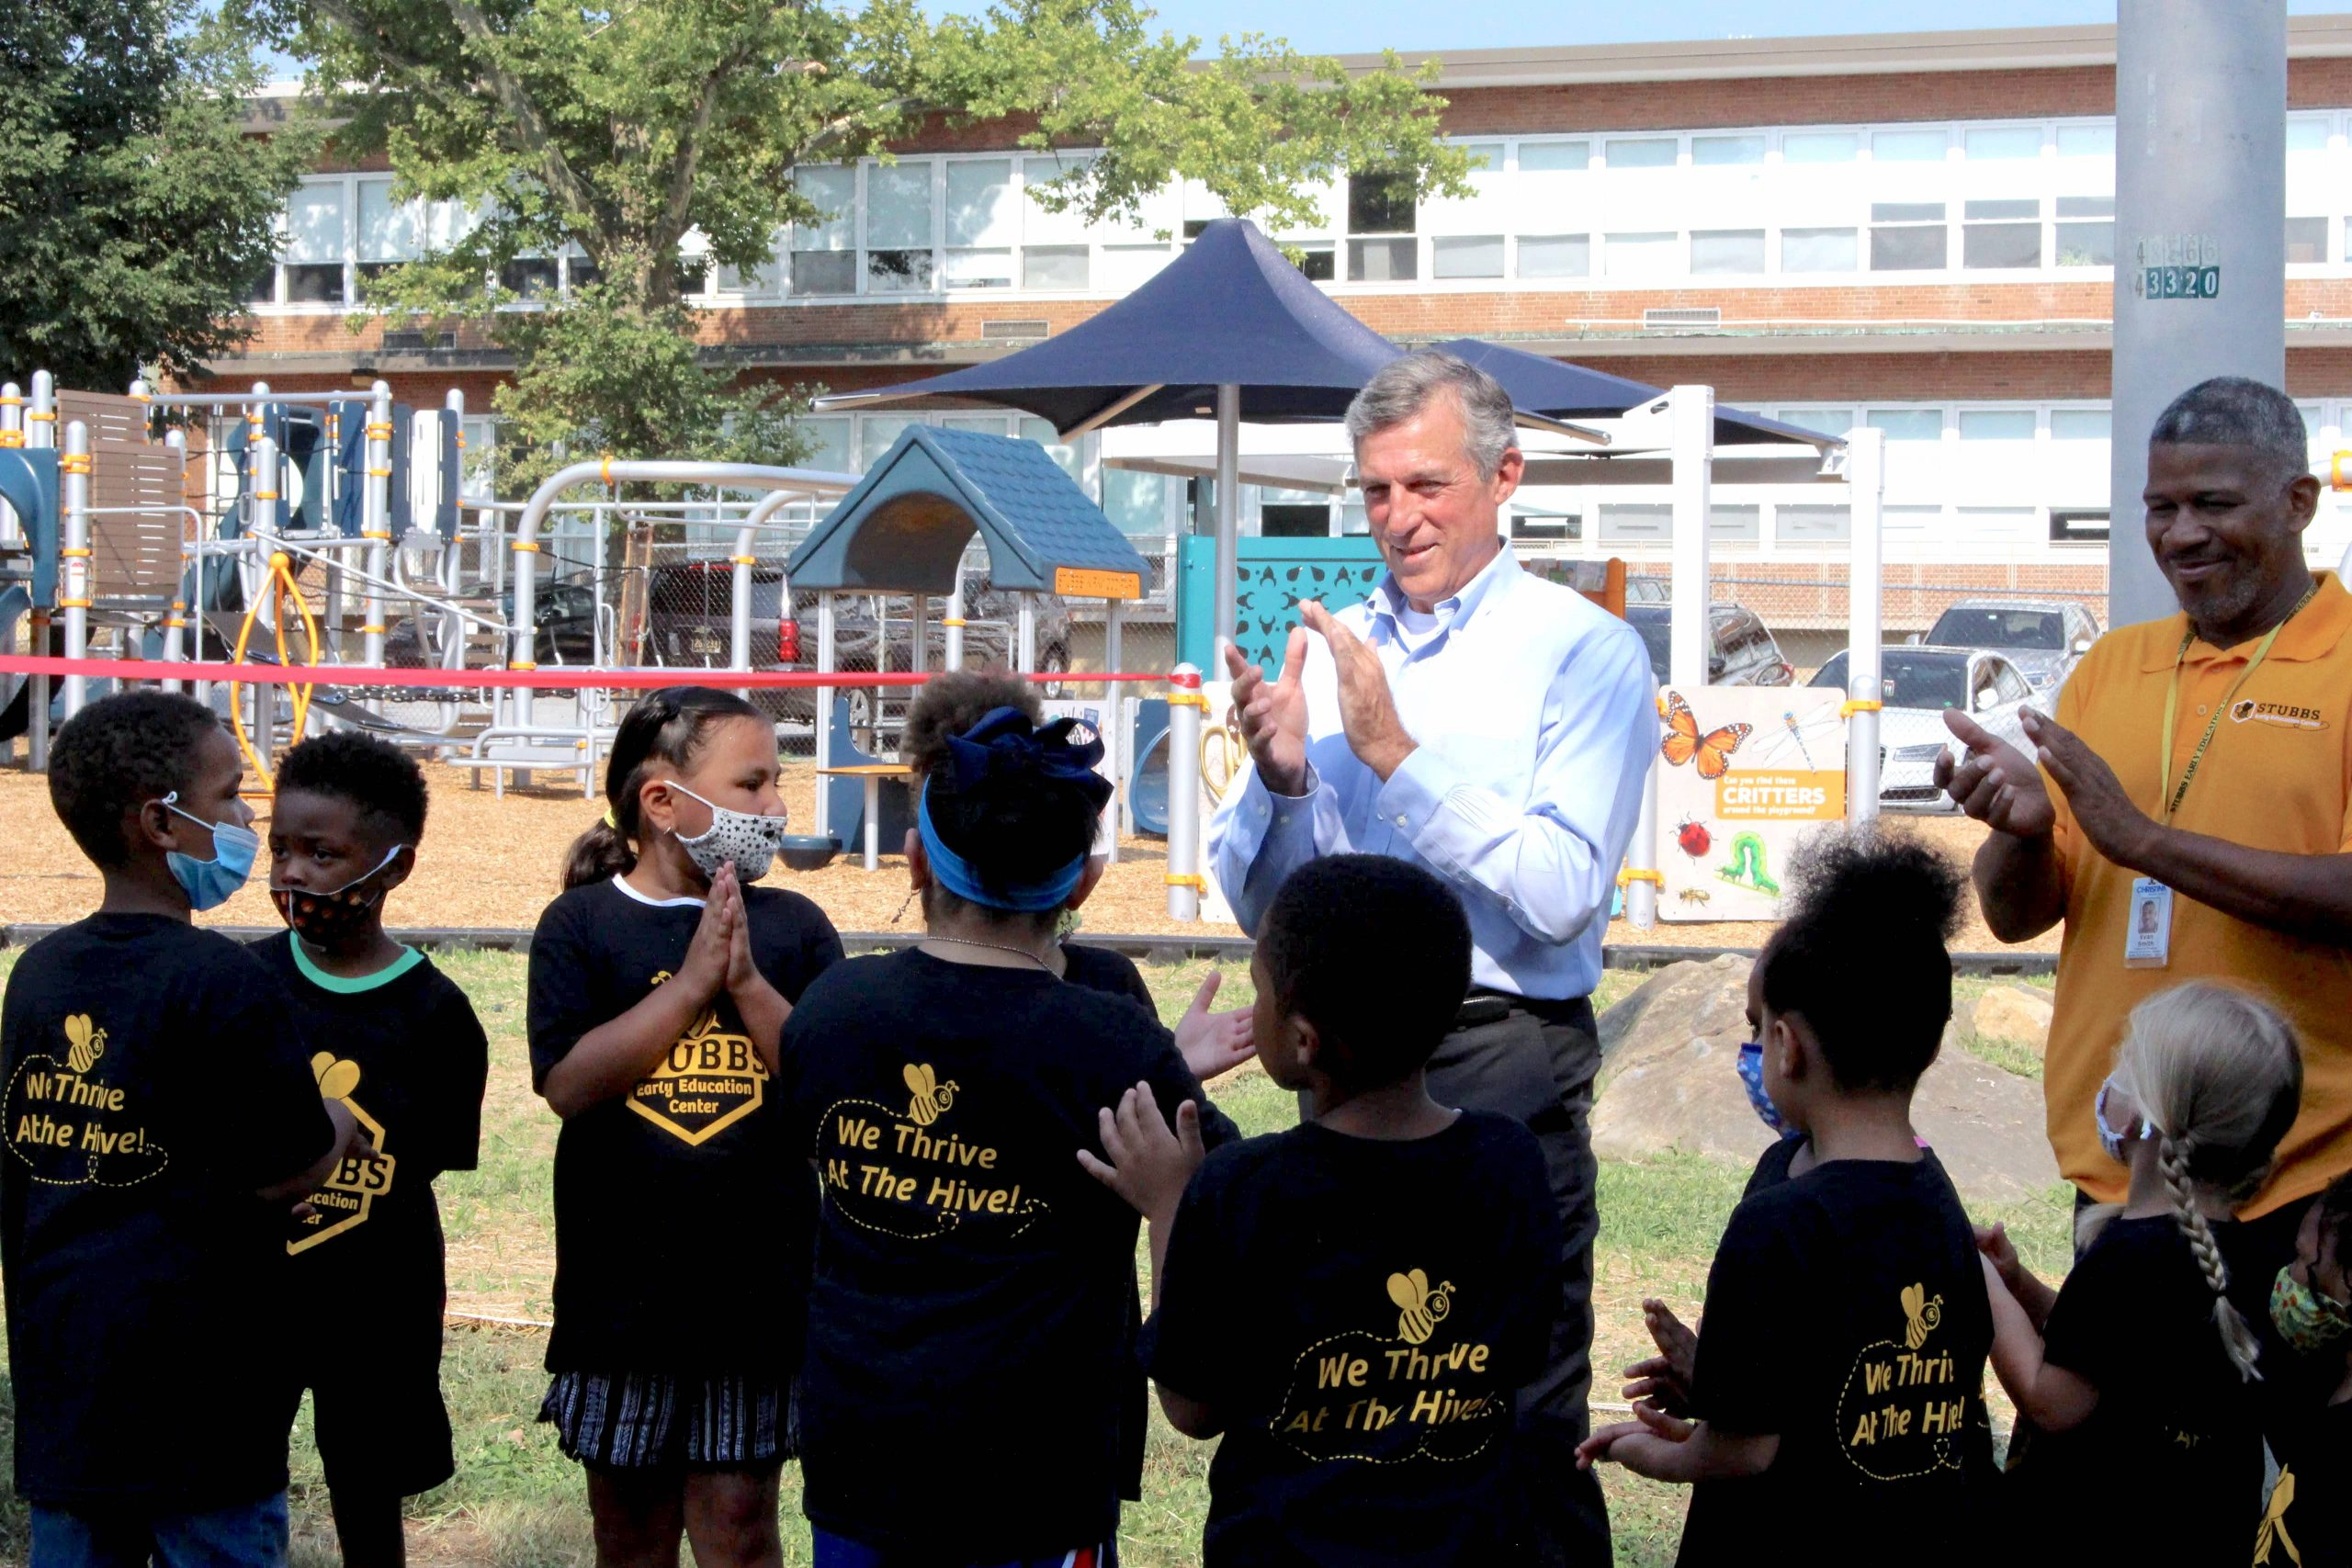 Governor Carney claps his hands with a group of students in front of a park.